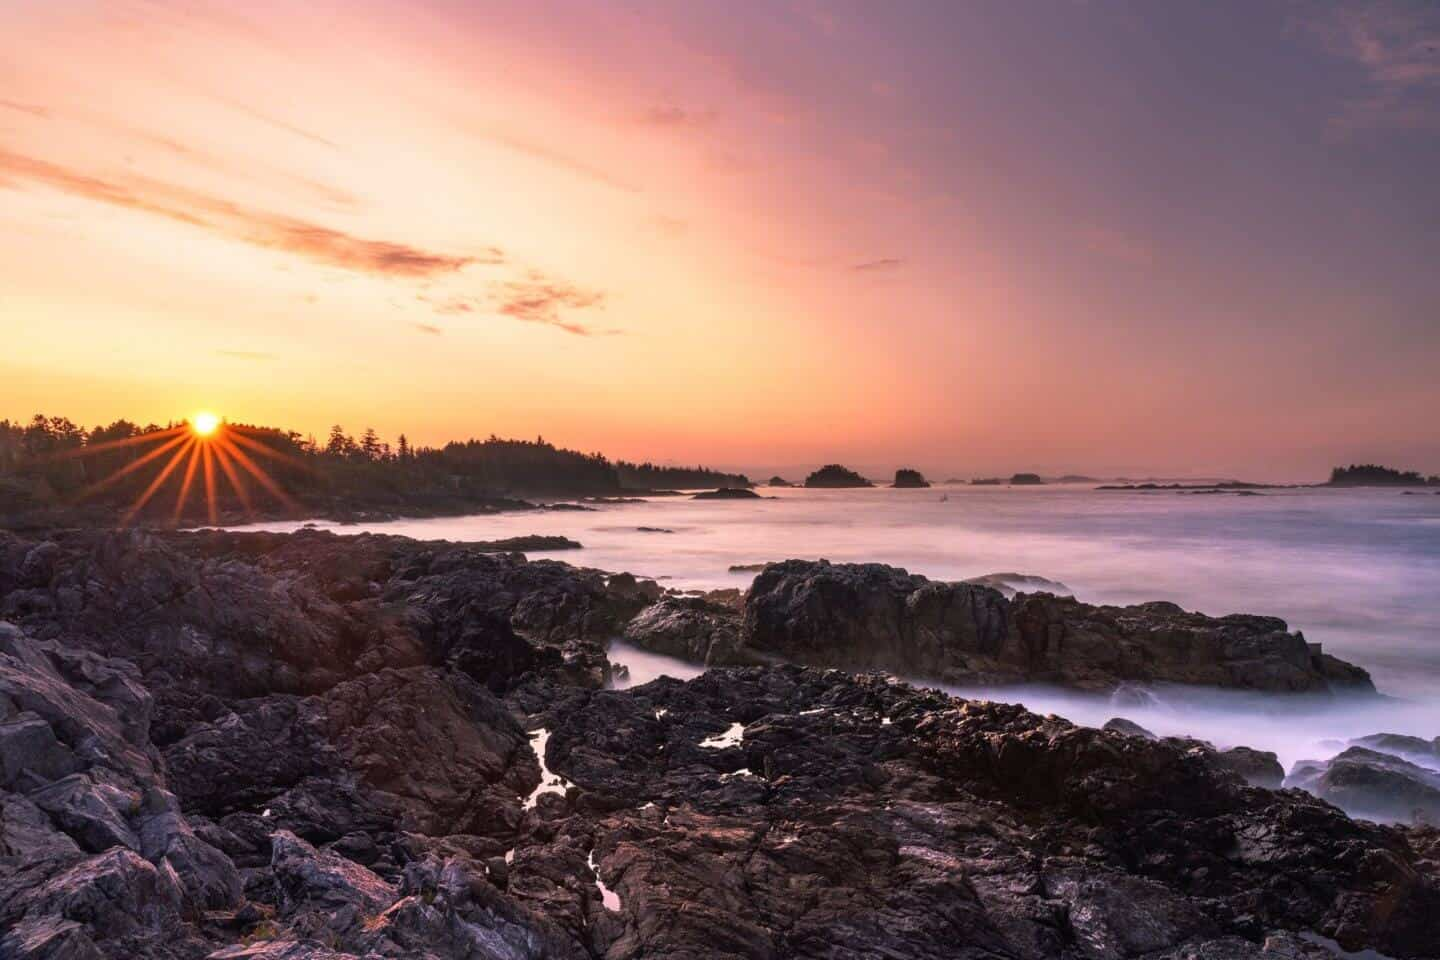 A stunning view of the savage Wild Pacific Trail at sunrise